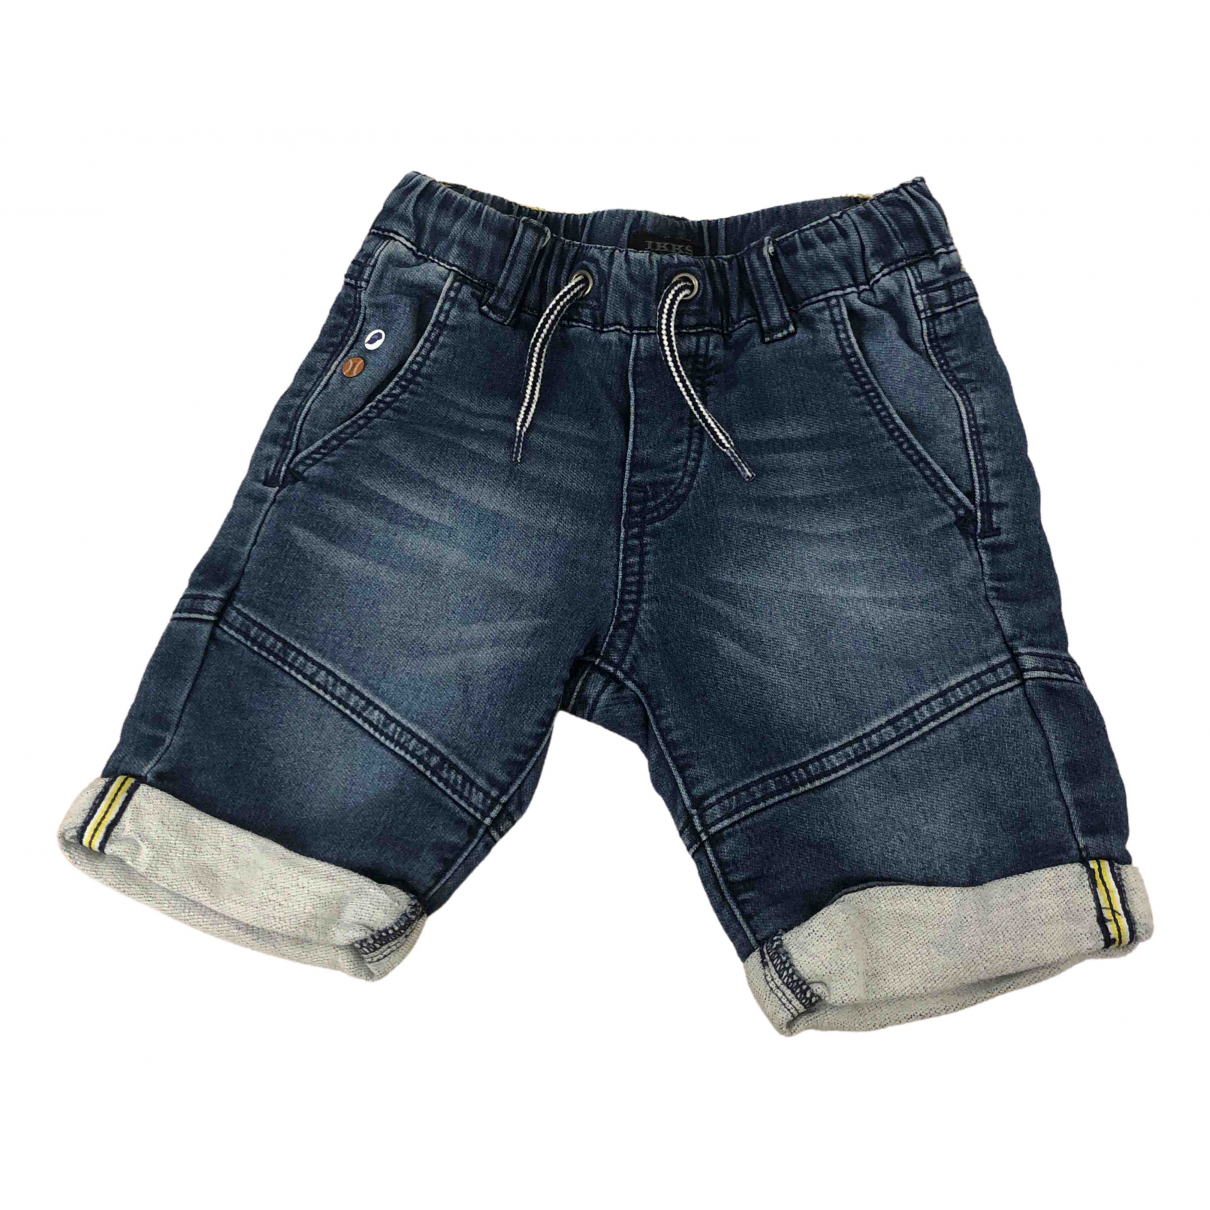 Ikks \N Blue Denim - Jeans Shorts for Kids 5 years - up to 108cm FR